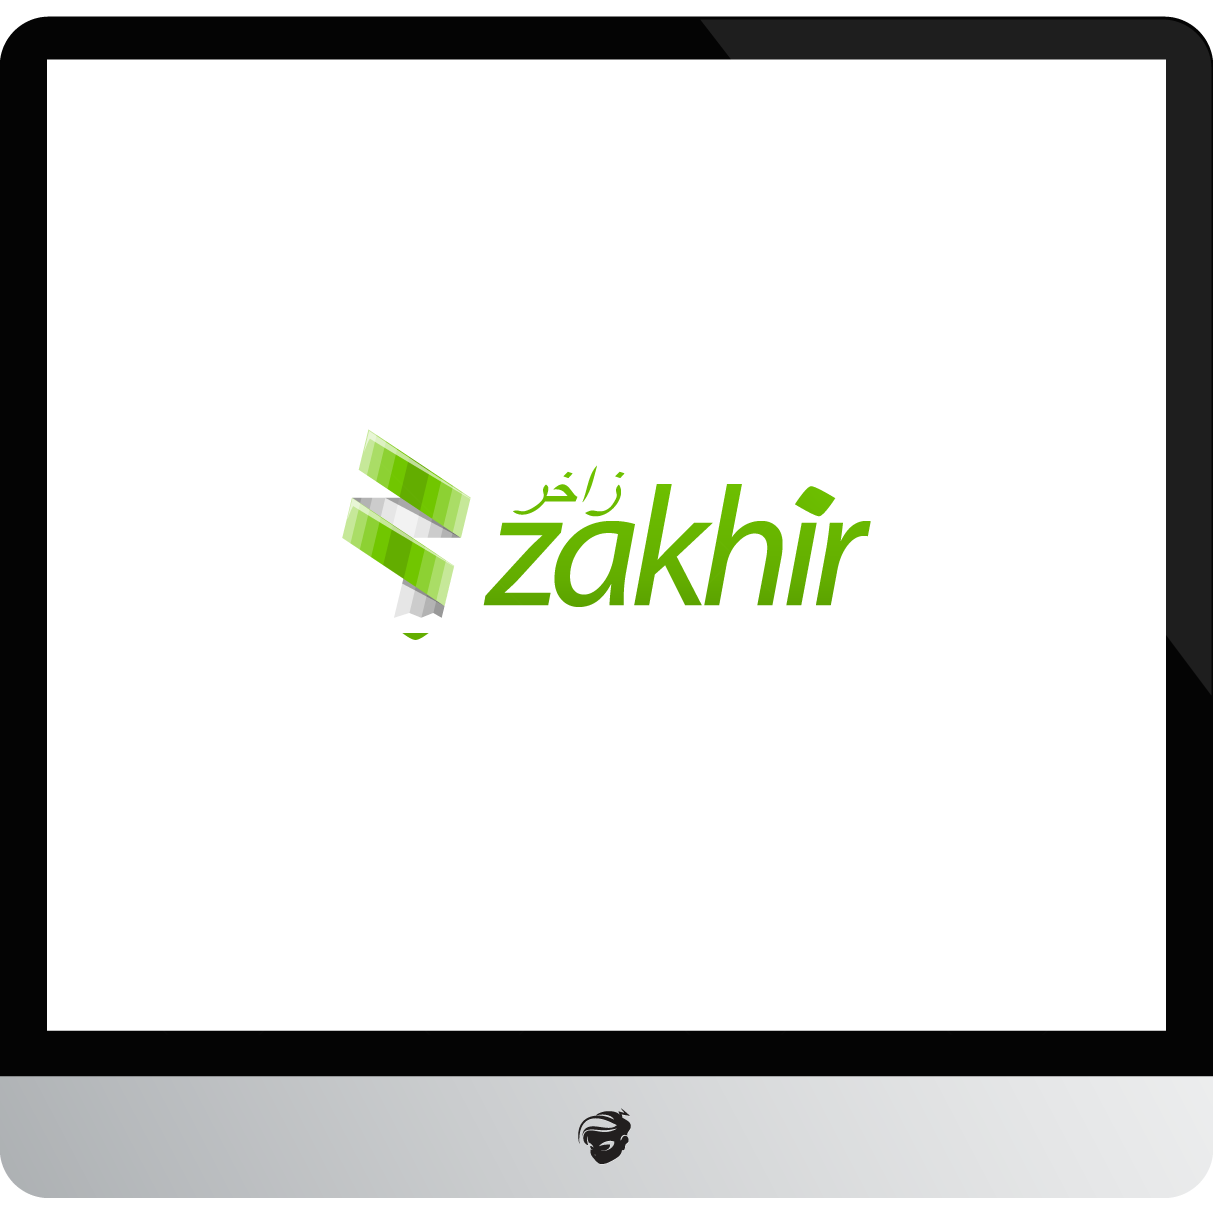 Logo Design by zesthar - Entry No. 100 in the Logo Design Contest Zakhir Logo Design.